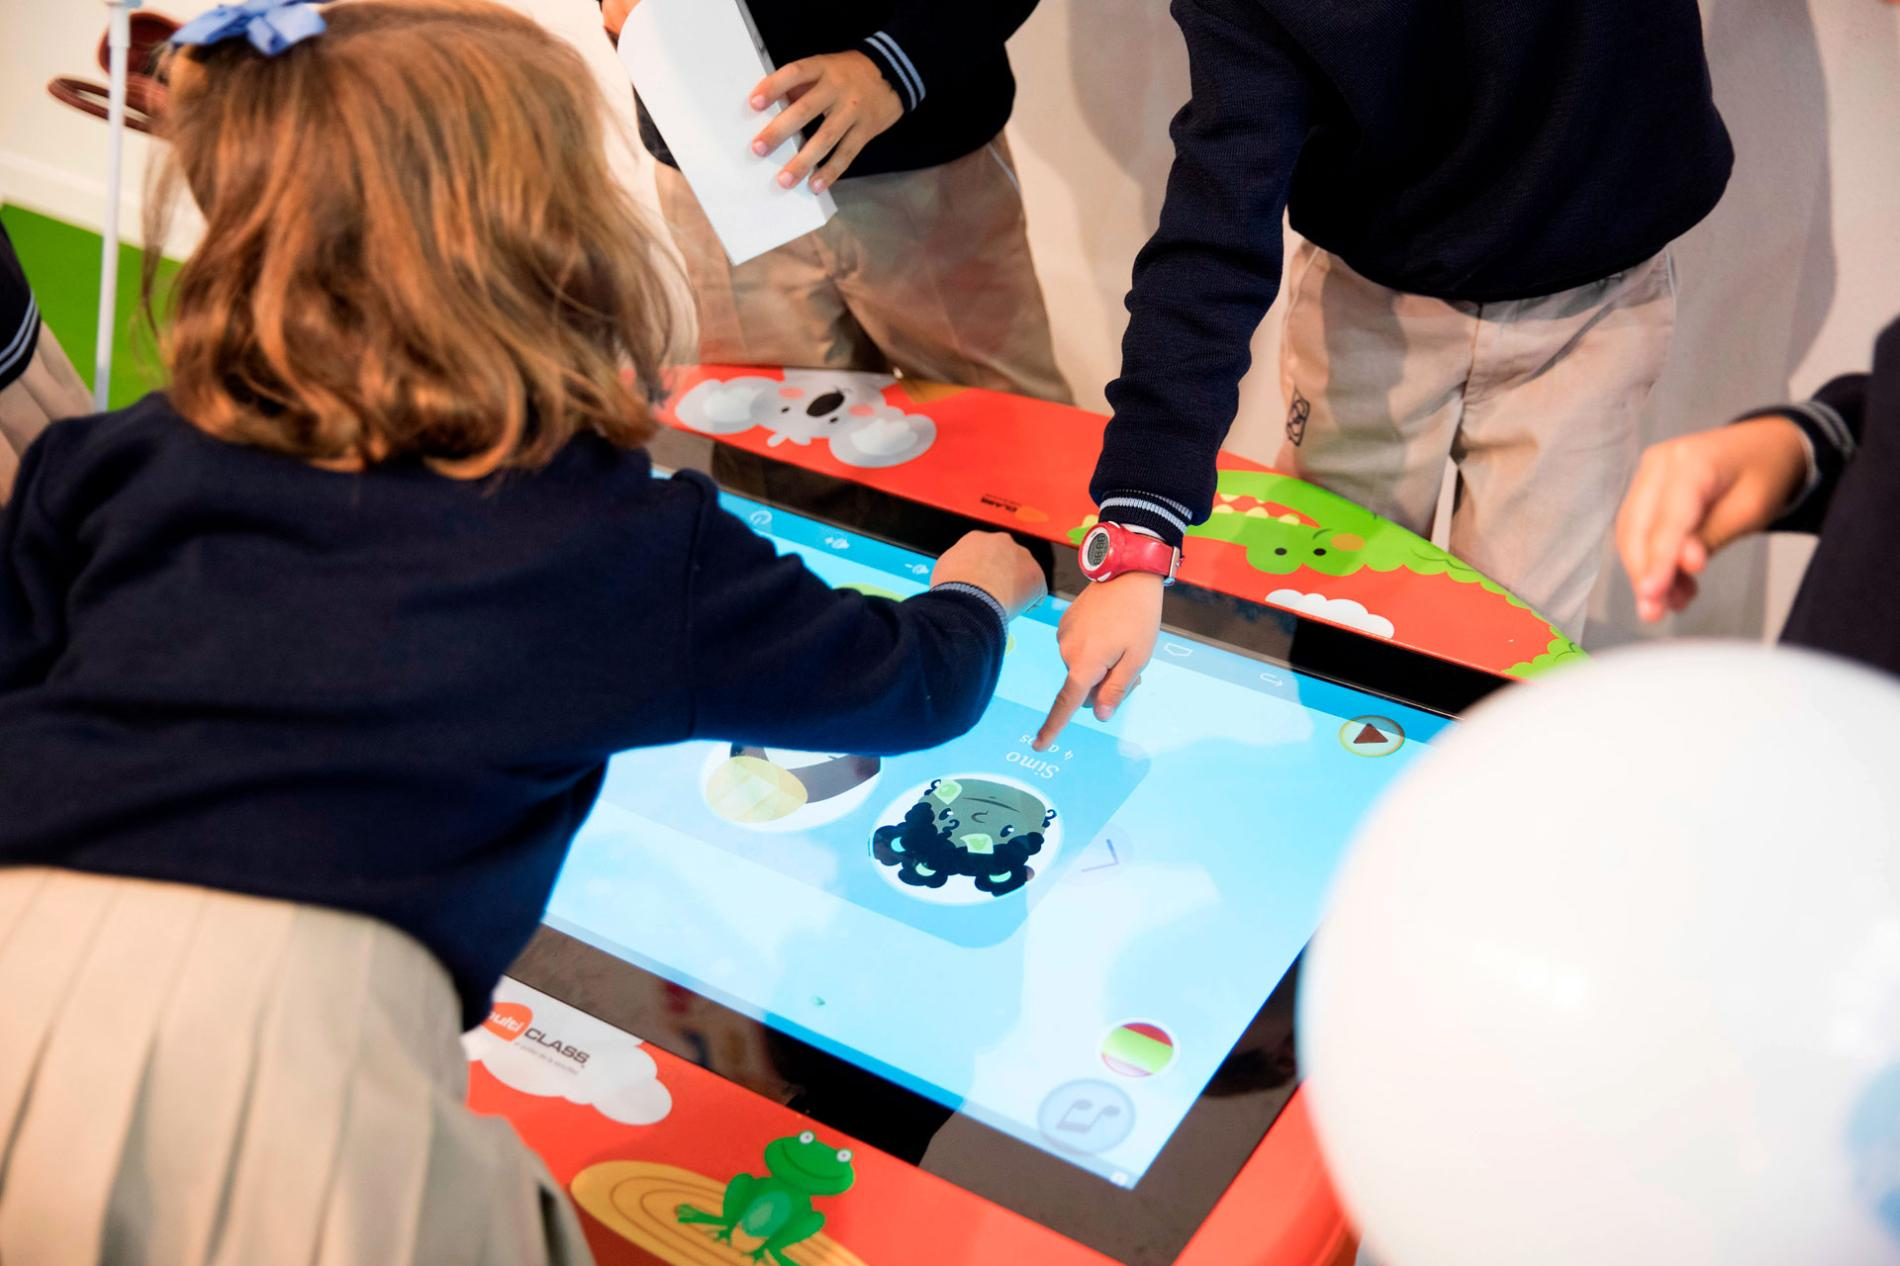 Children playing with interactive screen